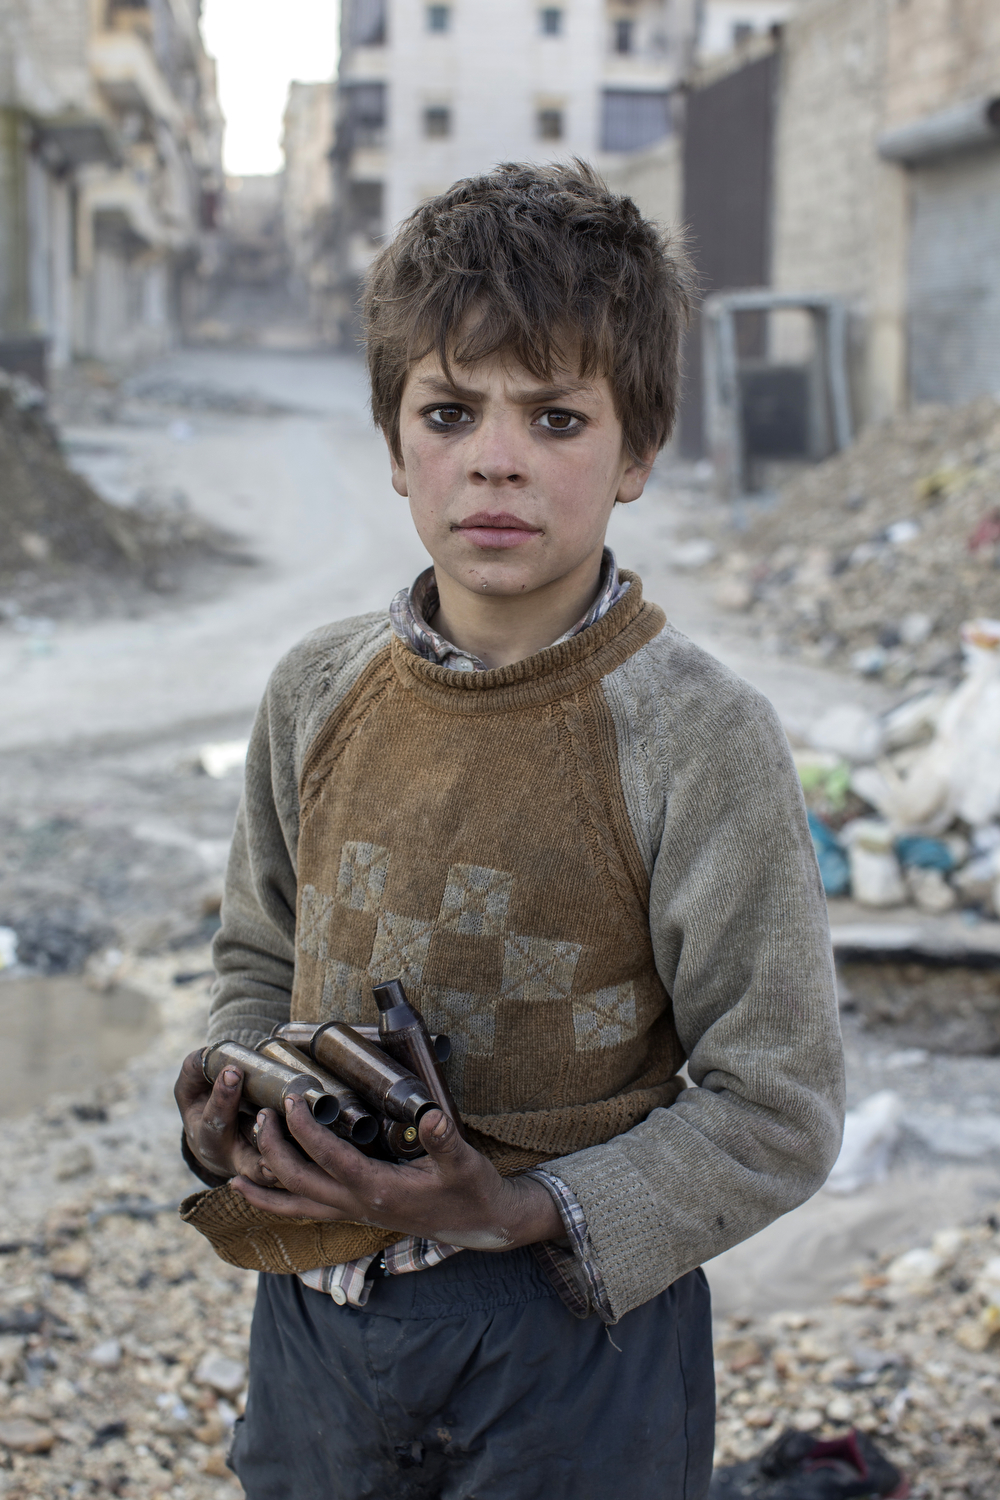 Nine year old Alladin collects used ammunition to sell as metal in Aleppo, Syria.